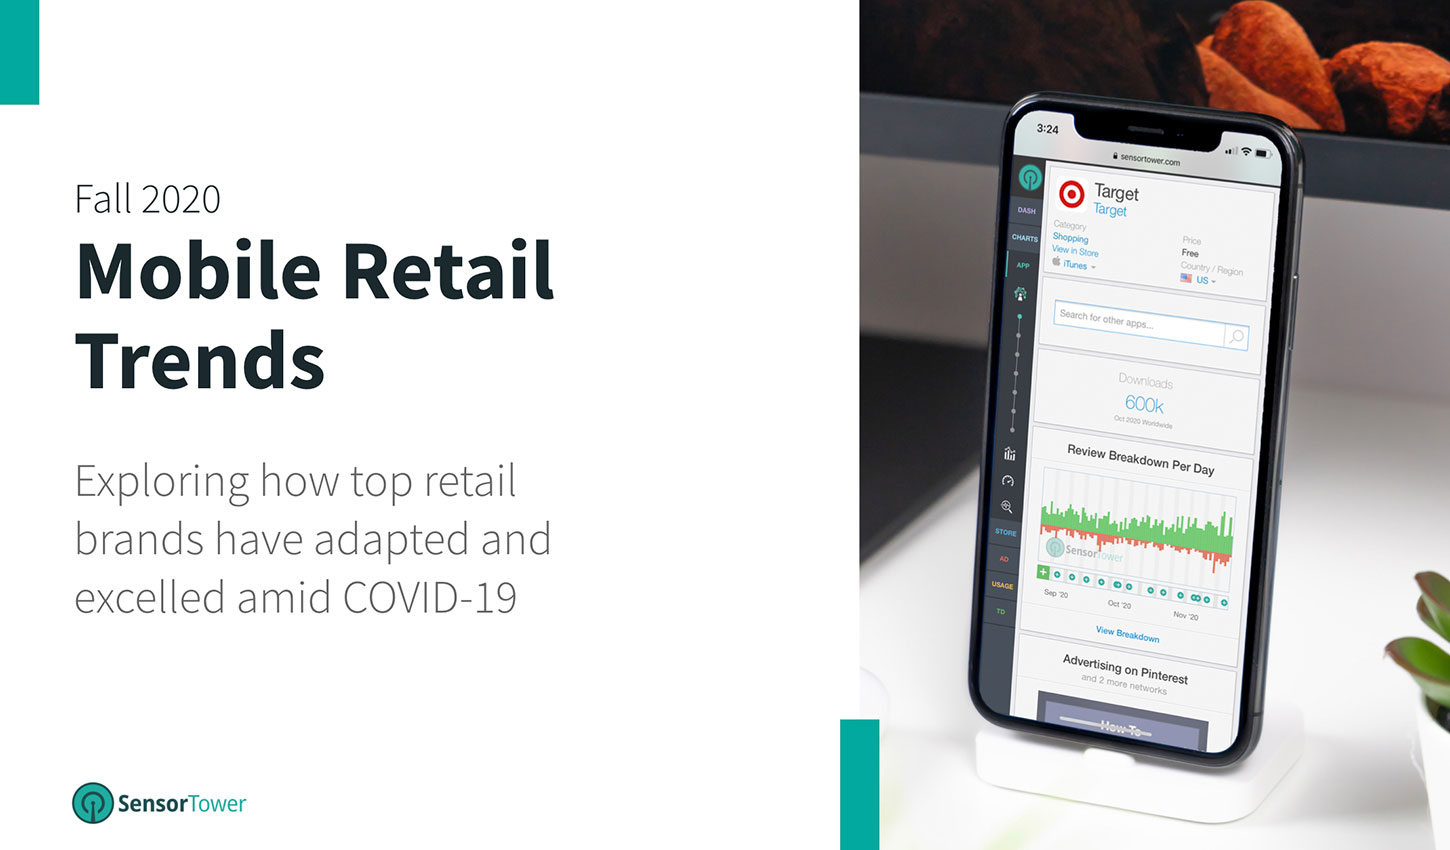 """According to Sensor Tower's Mobile Retail Trends Fall 2020 report, the top B&M apps saw installs grow 27% year-over-year and top e-commerce apps grew 14% year-over-year from Q1 to Q3 2020."""""""